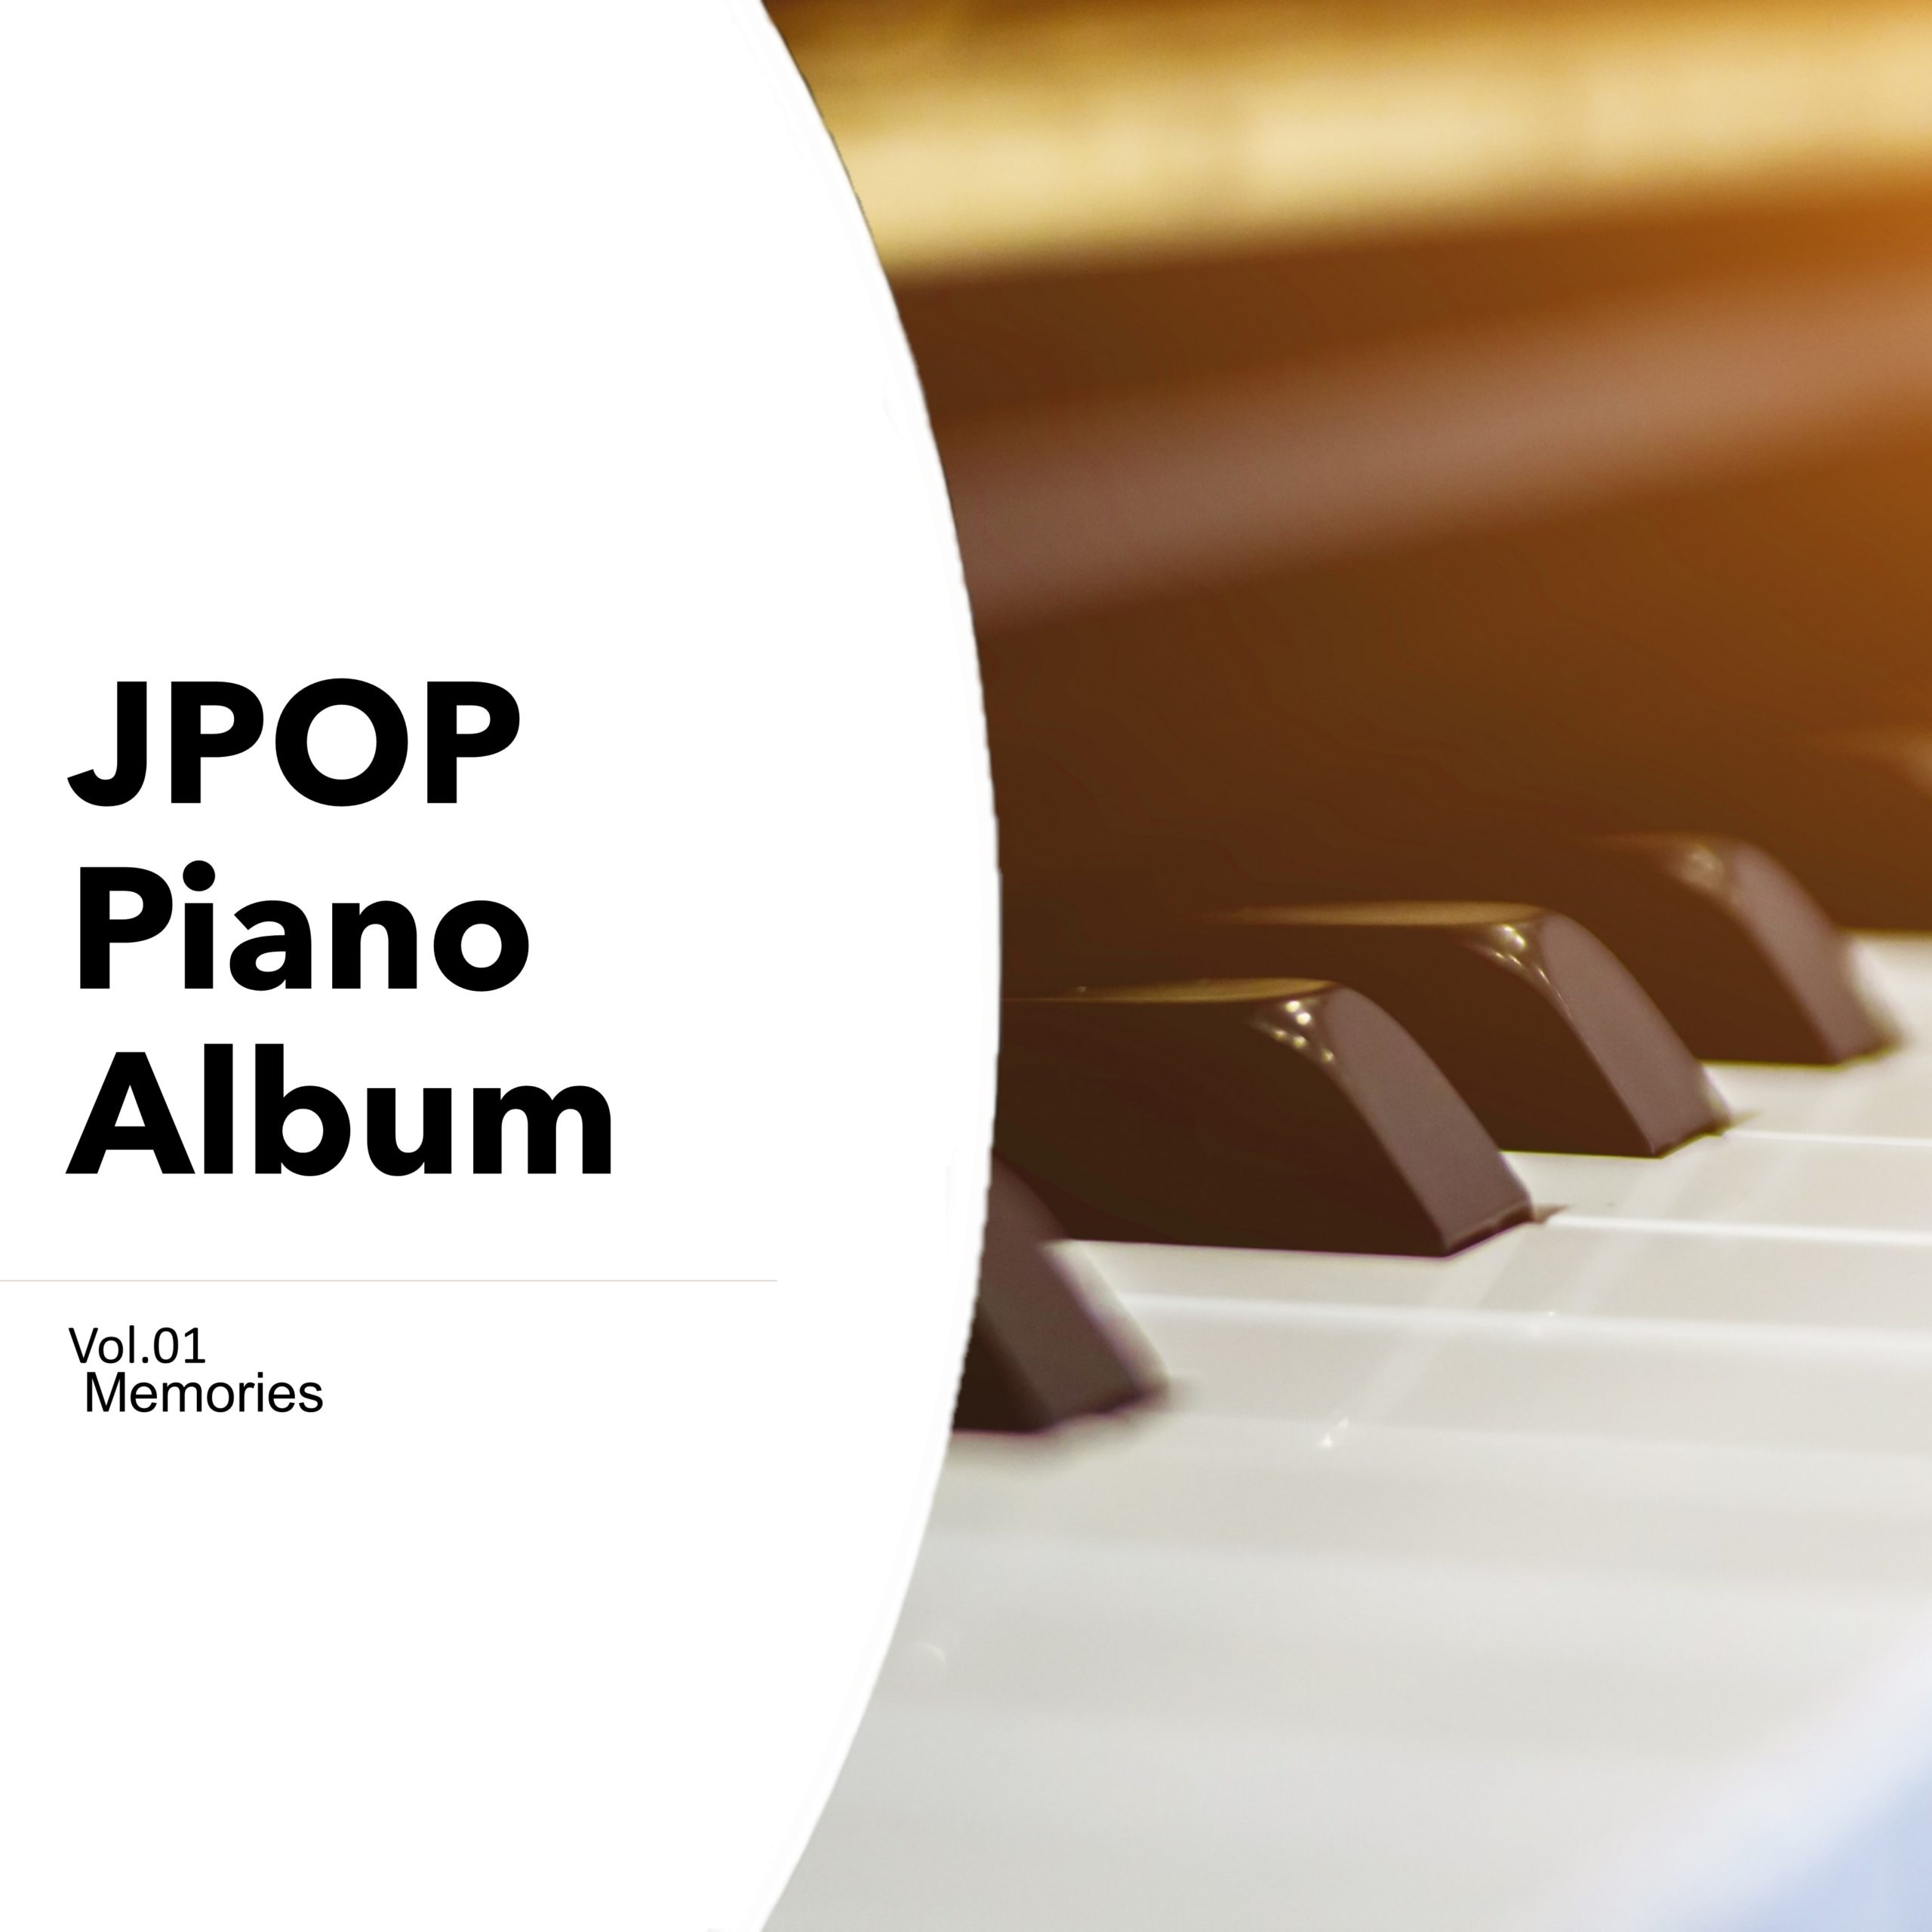 JPOP Piano Album Vol.01